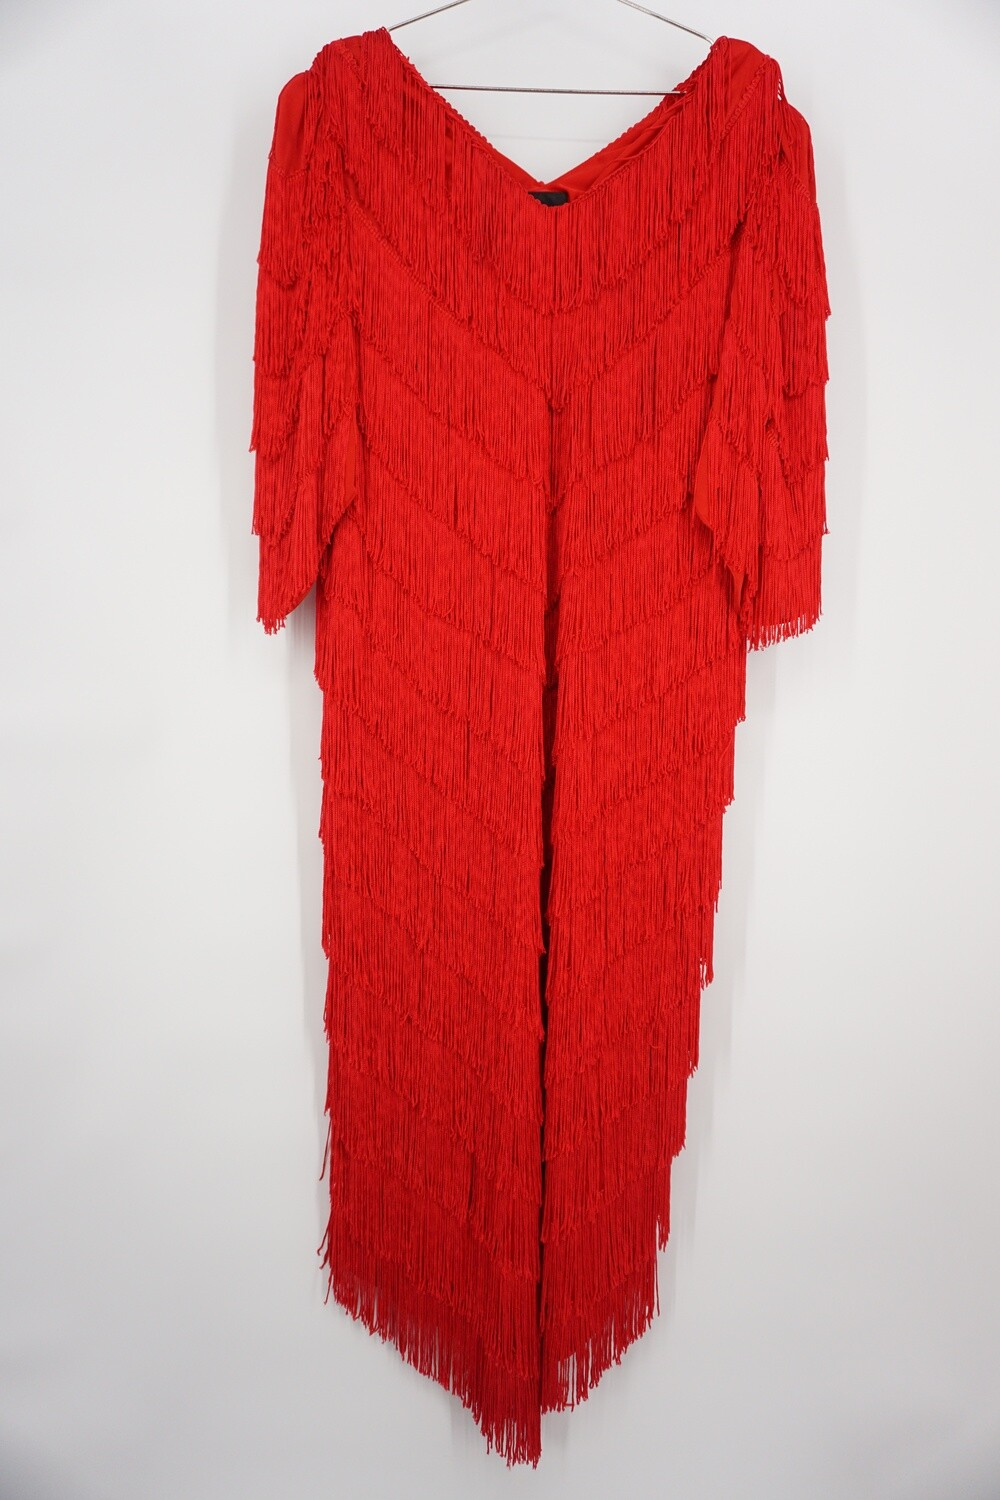 Red Fringe Party Dress Size 20